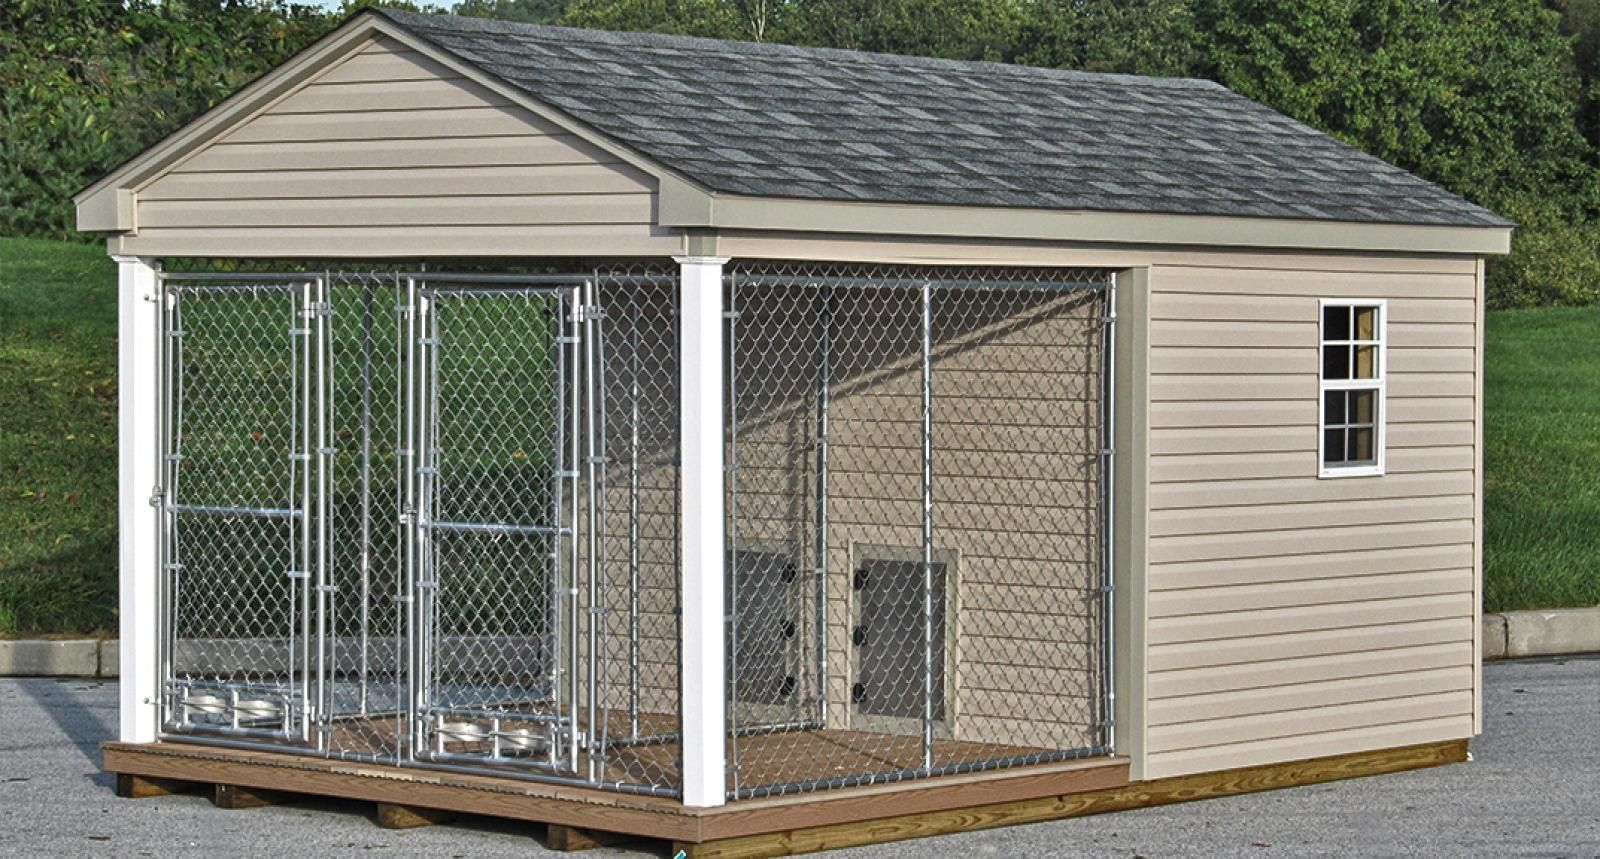 Top 10 Best Large Outdoor Dog Kennels For Sale Comparison Comparison Dog Kennels Large Dog Kennel Cover In 2020 With Images Dog Kennel Outdoor Dog Houses Dog Kennel